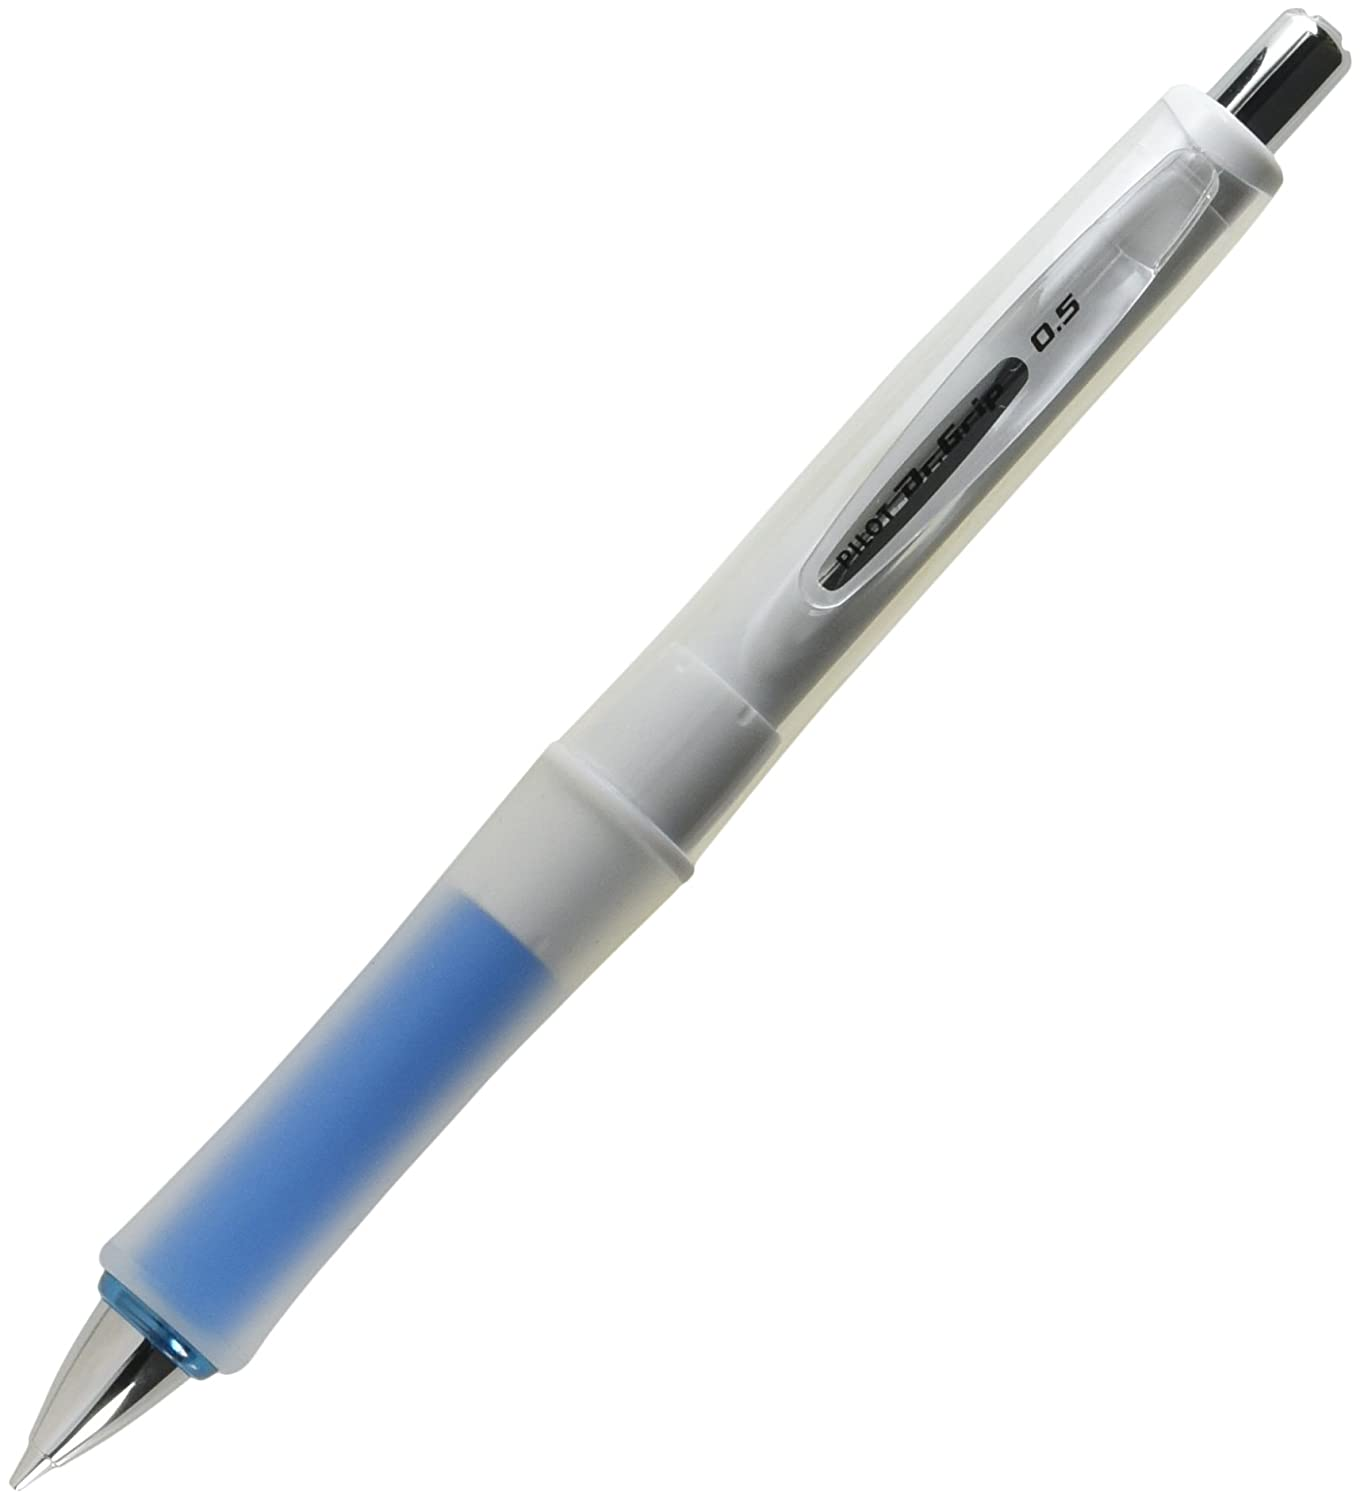 Pilot Mechanical Pencil Dr Grip G-Spec White,Soft Blue Grip,HDGS-60WR-SL5